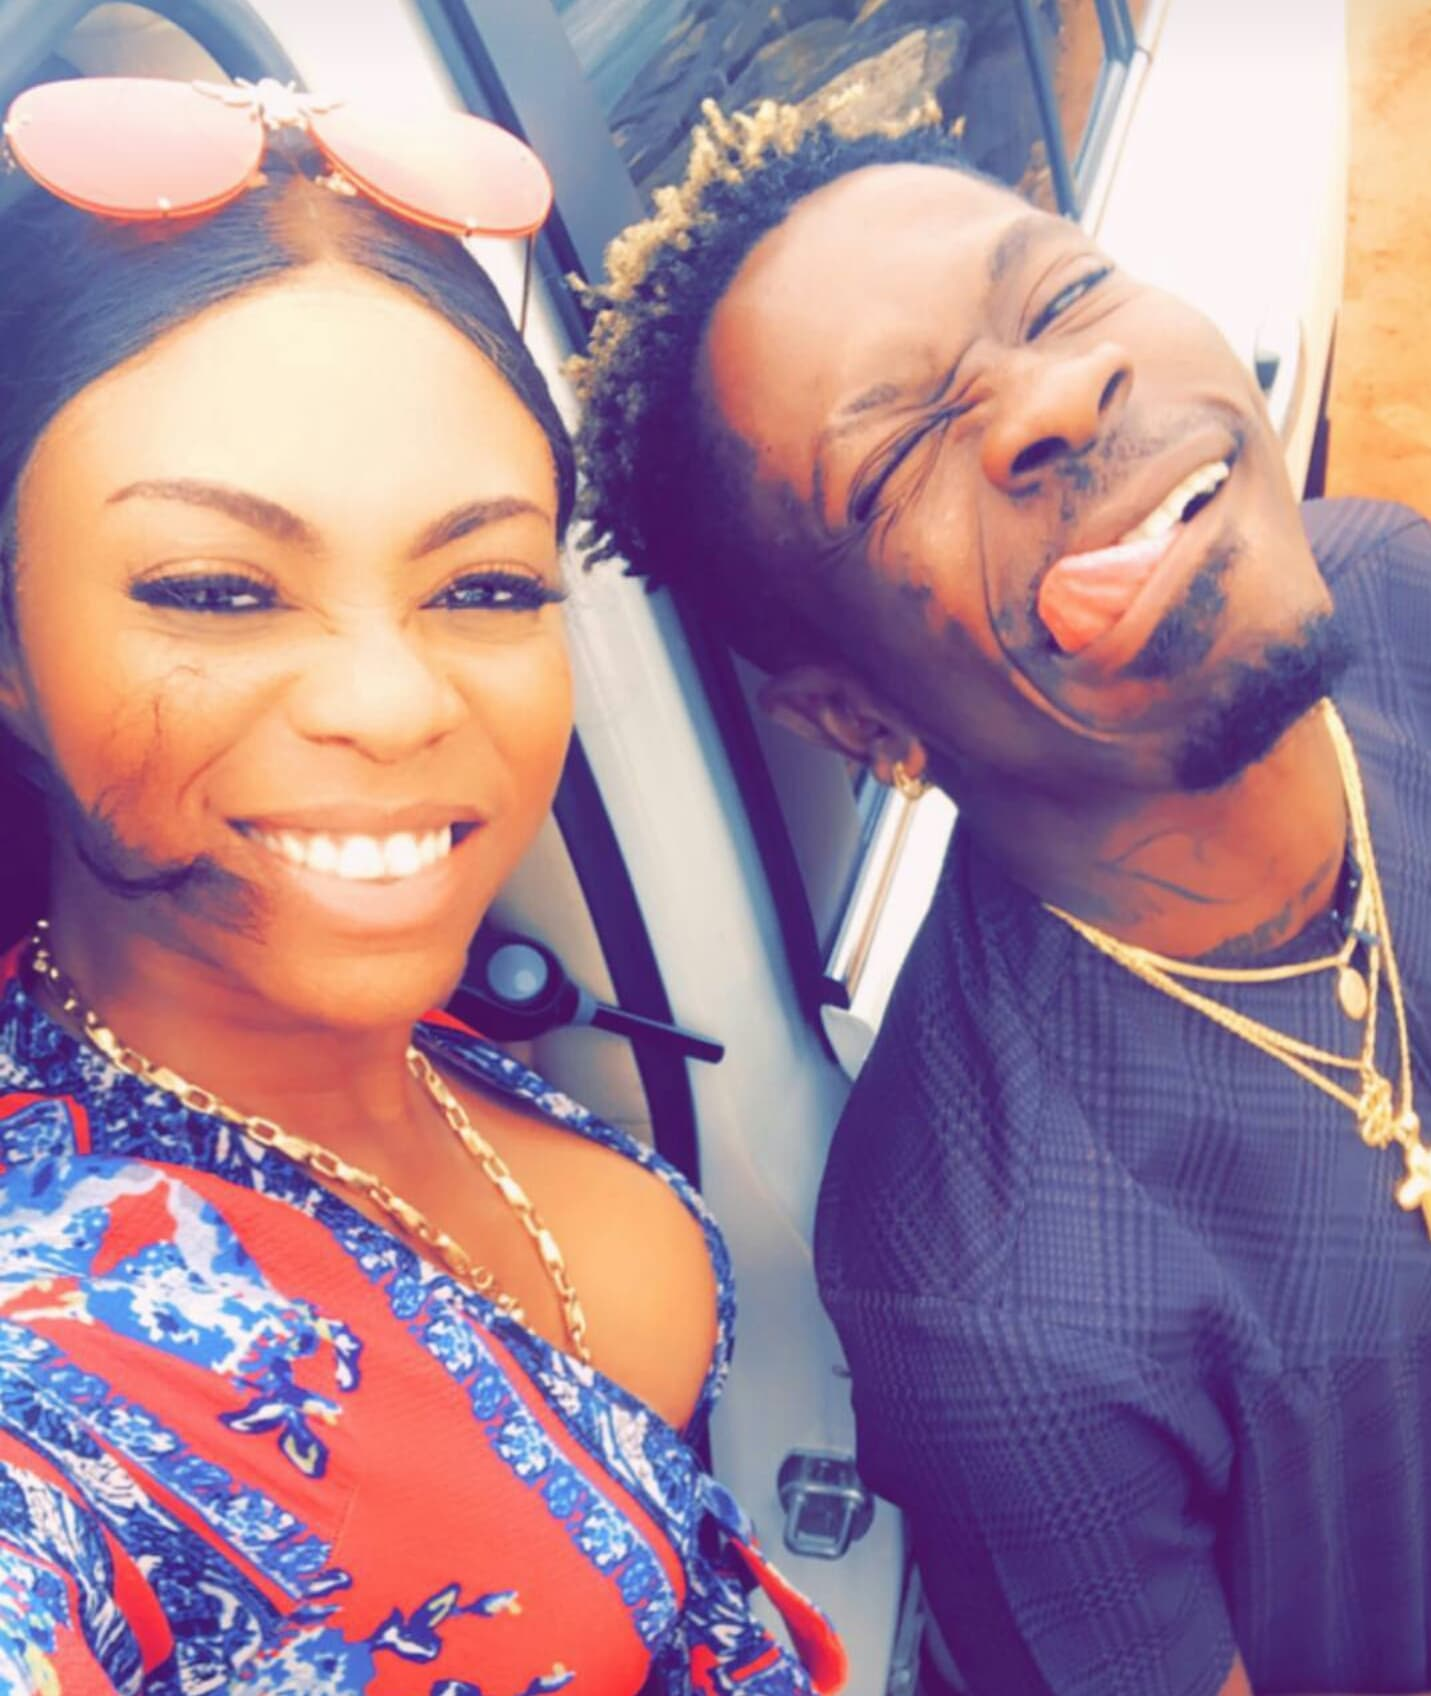 Shatta Wale takes 'babes' Shatta Michy for a ride after church